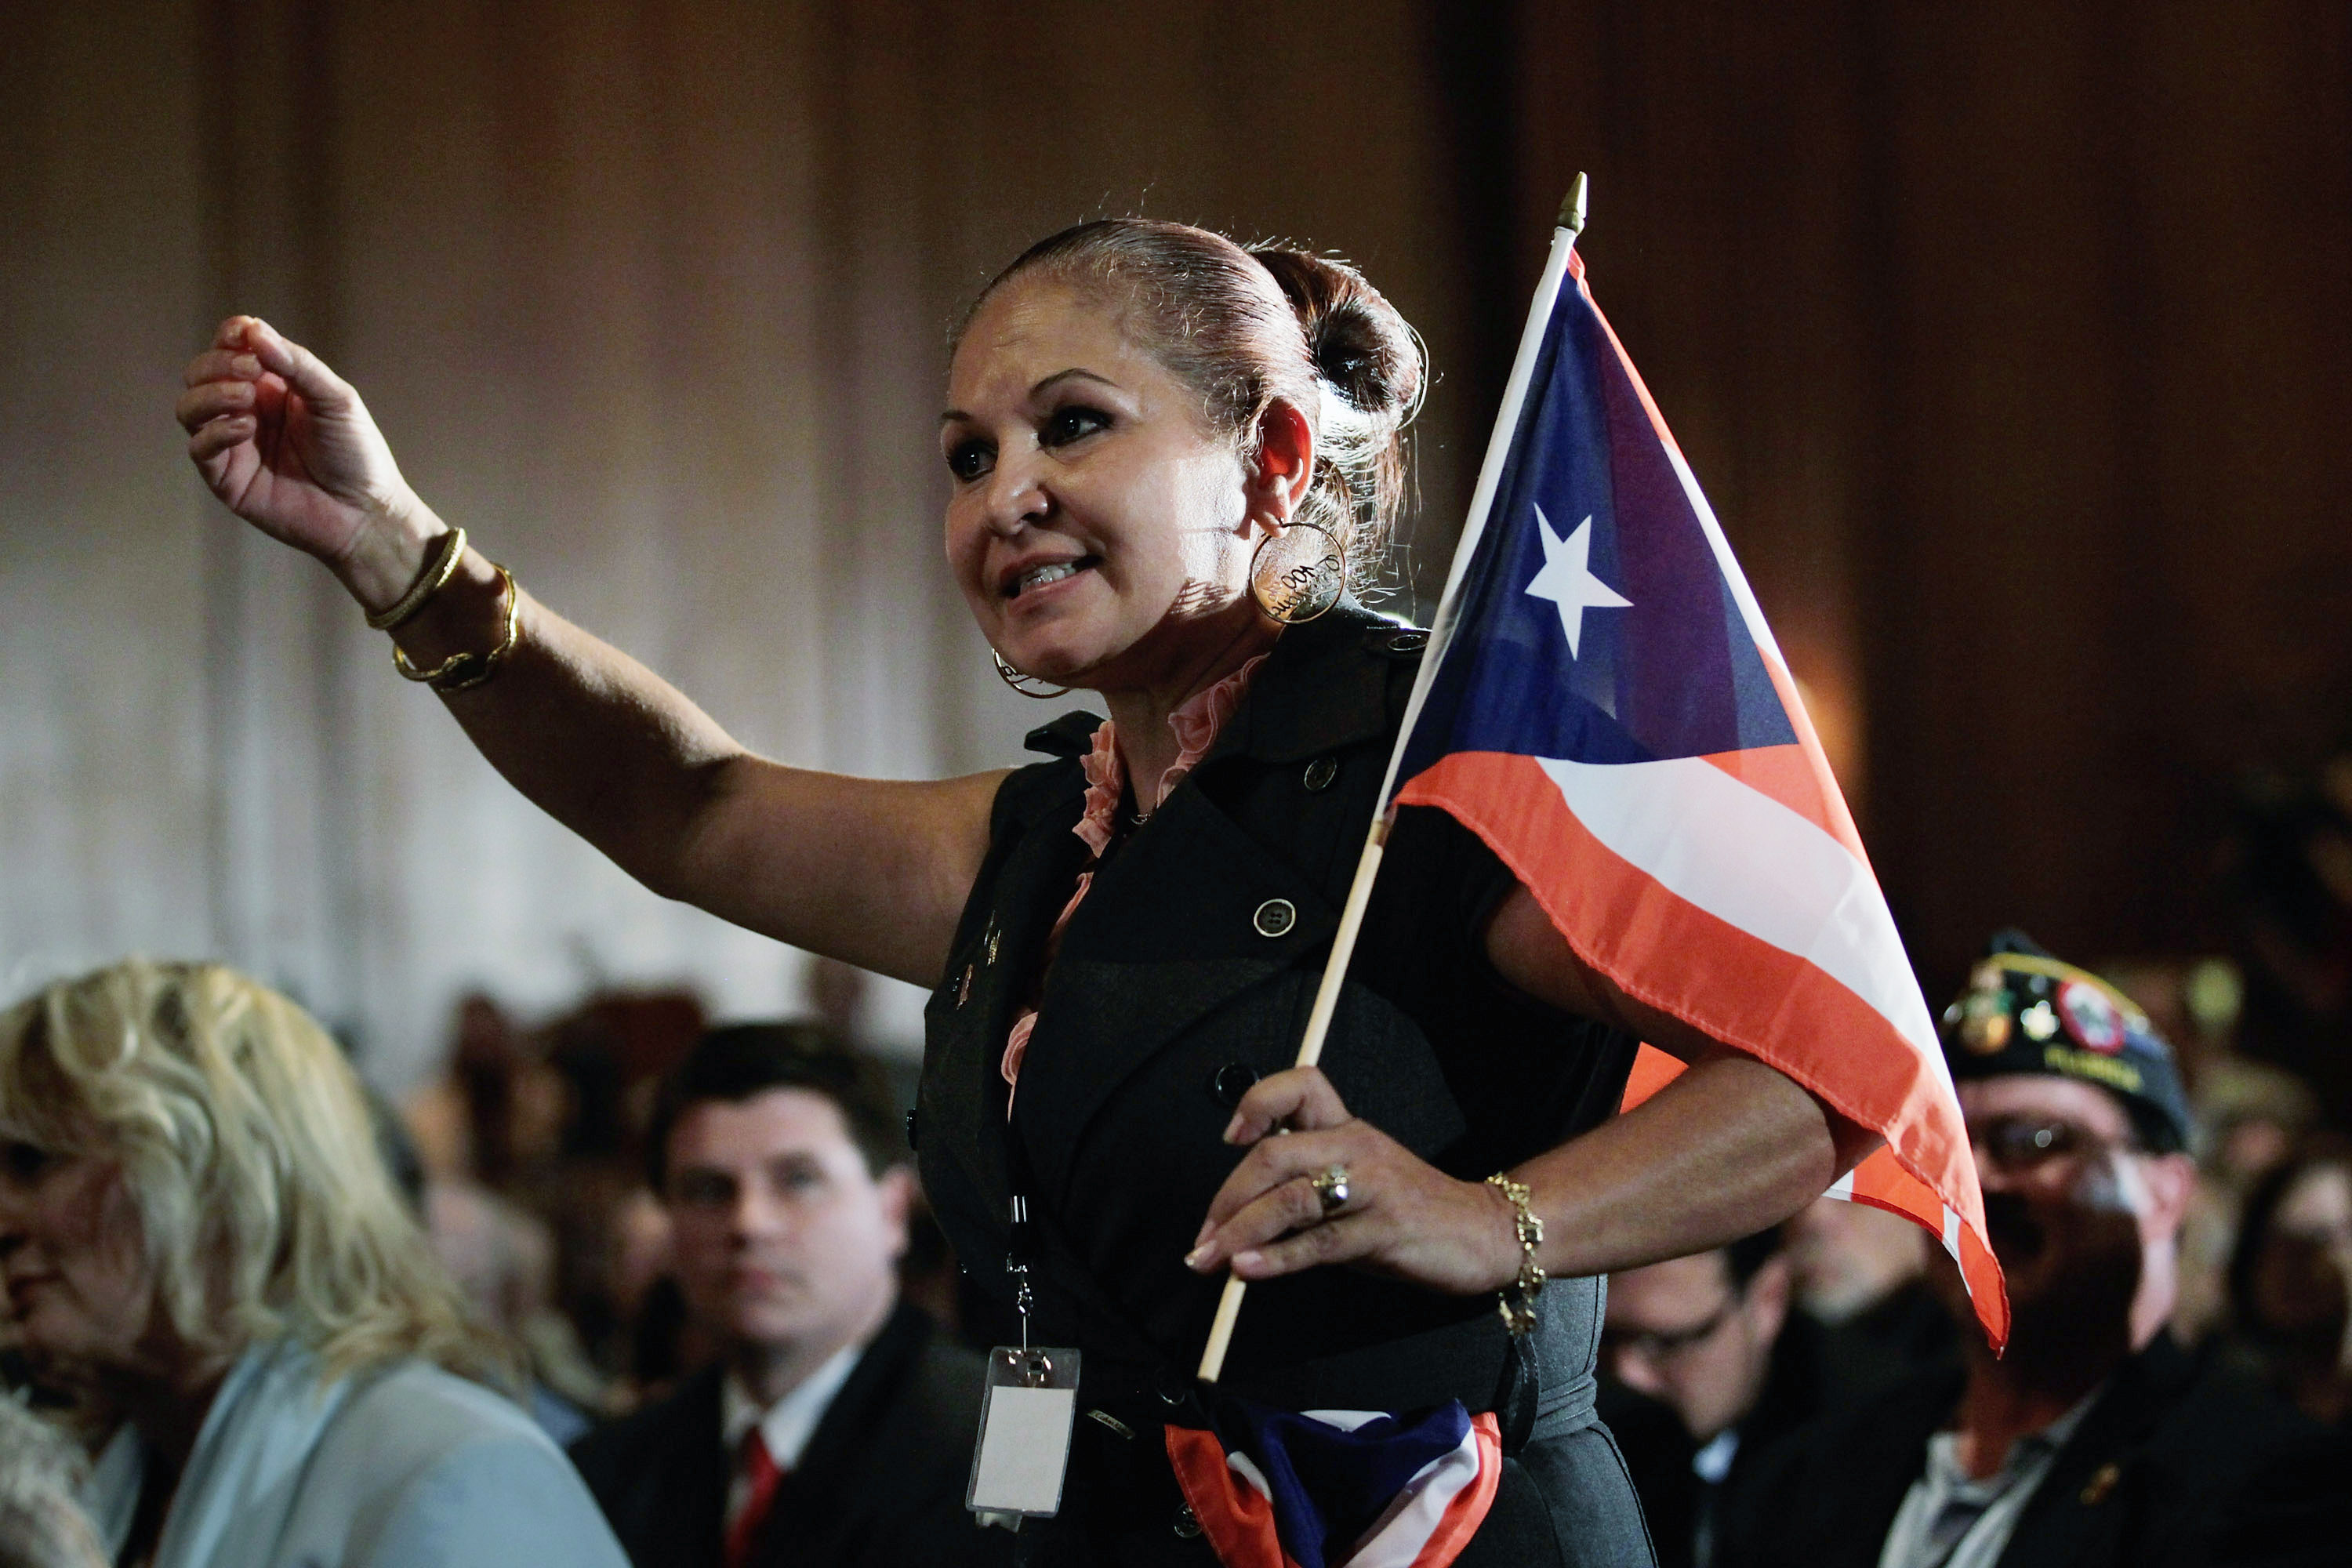 Puerto Rico's collapsing economy could win the election for Hillary Clinton